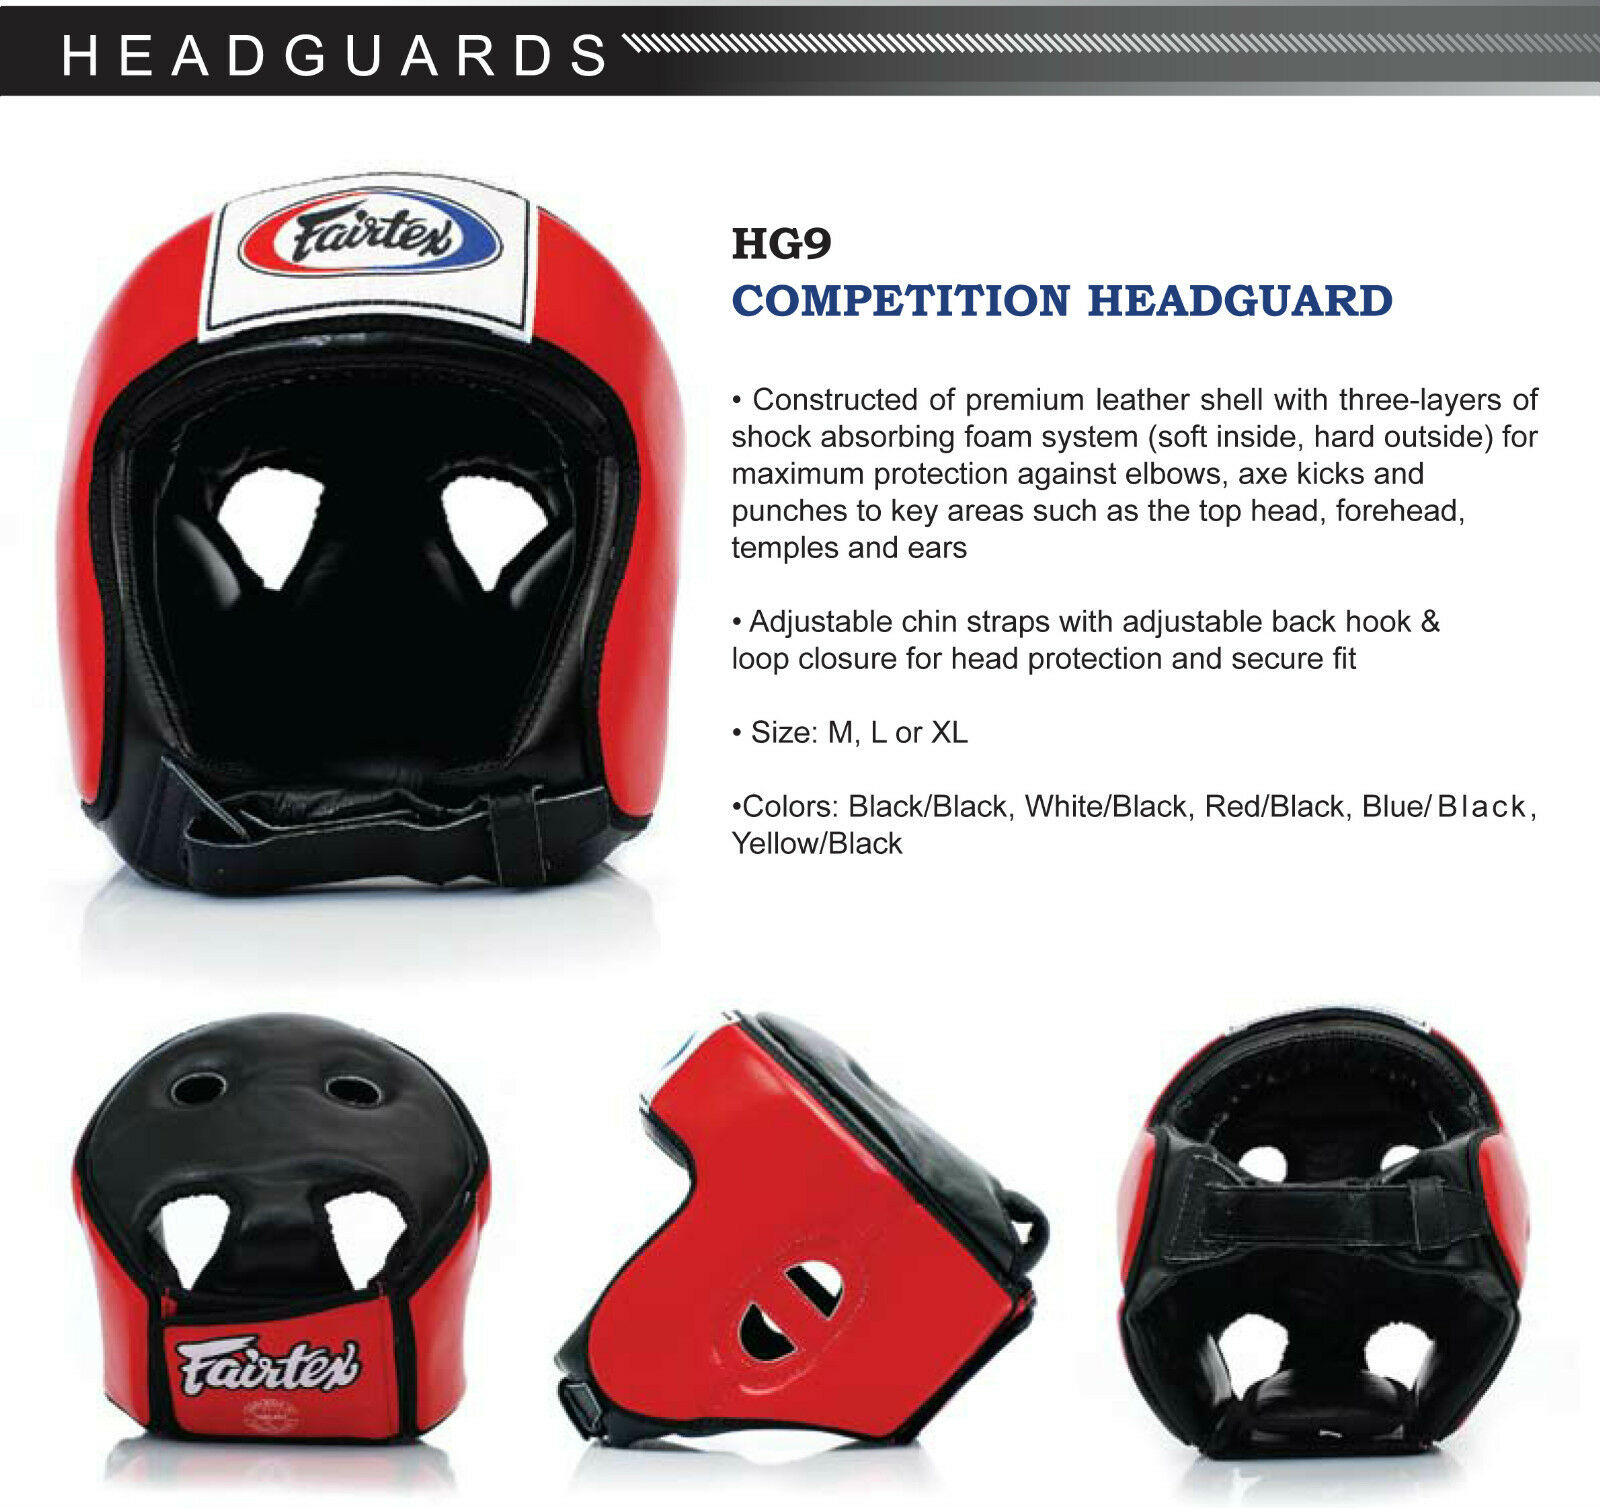 Fairtex Competition HeadGuard Open Face Best MMA Equipment 7 Days Made to Order